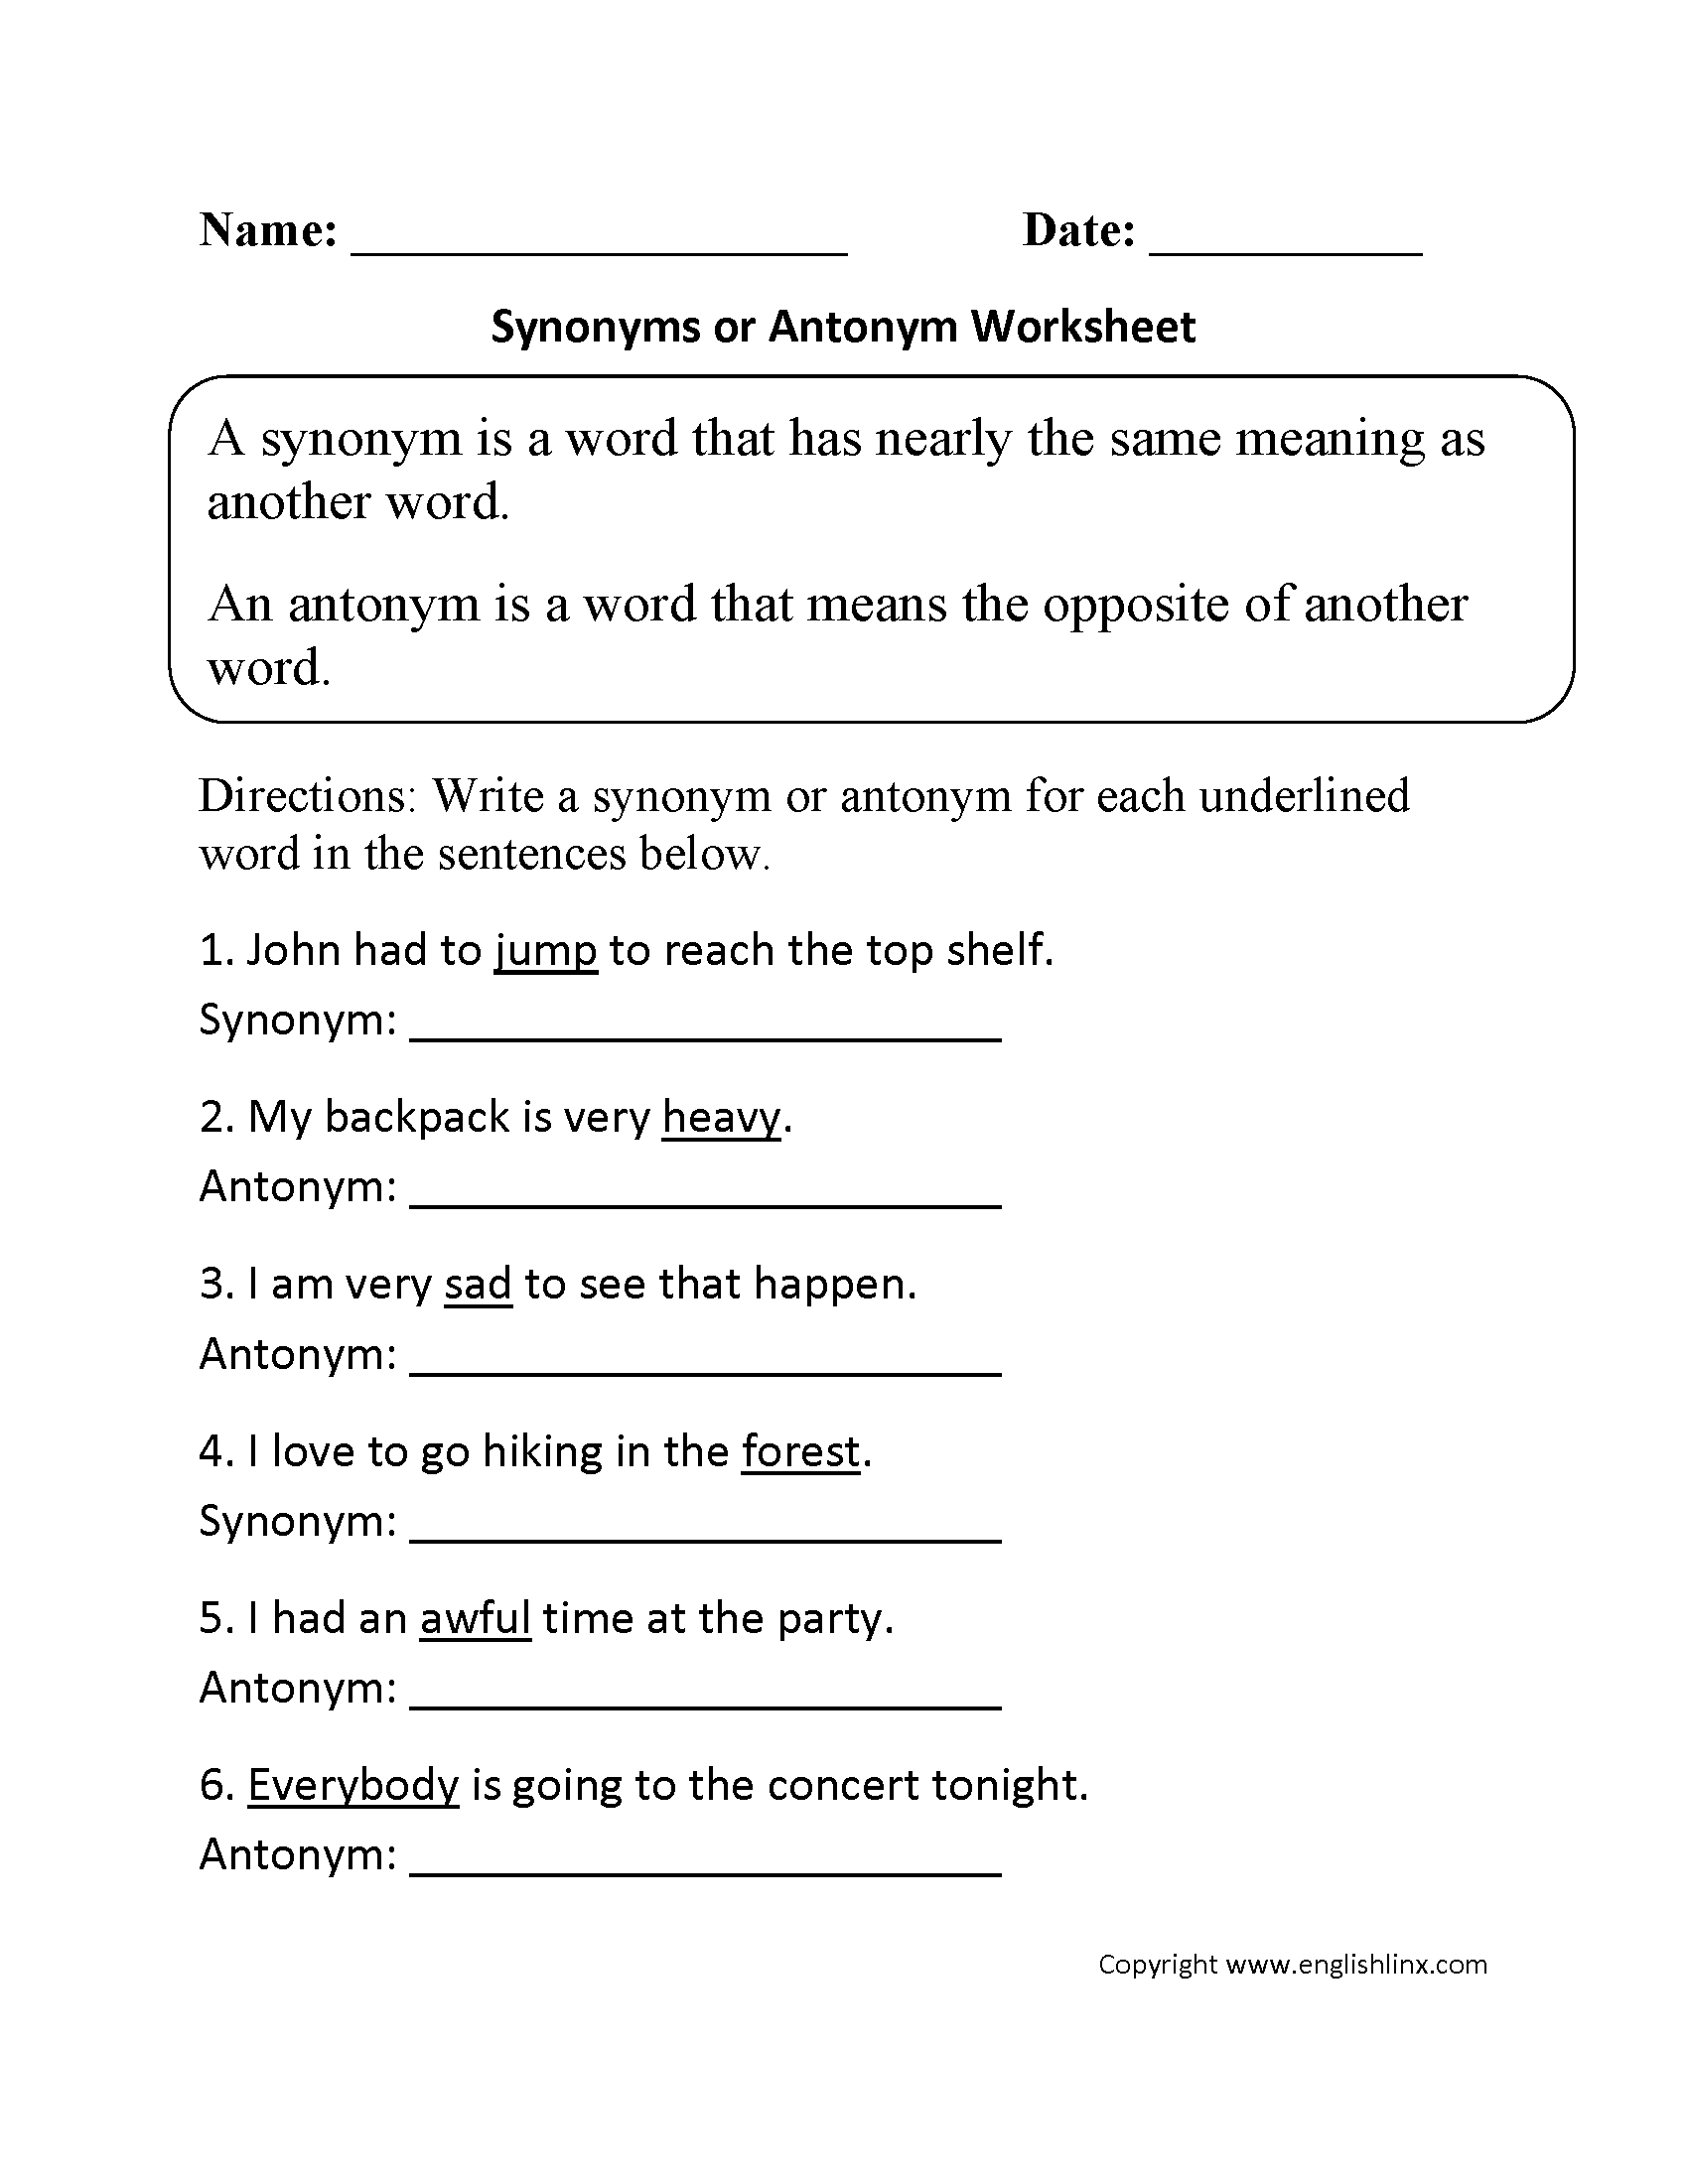 Synonym Or Antonym Worksheet With Images